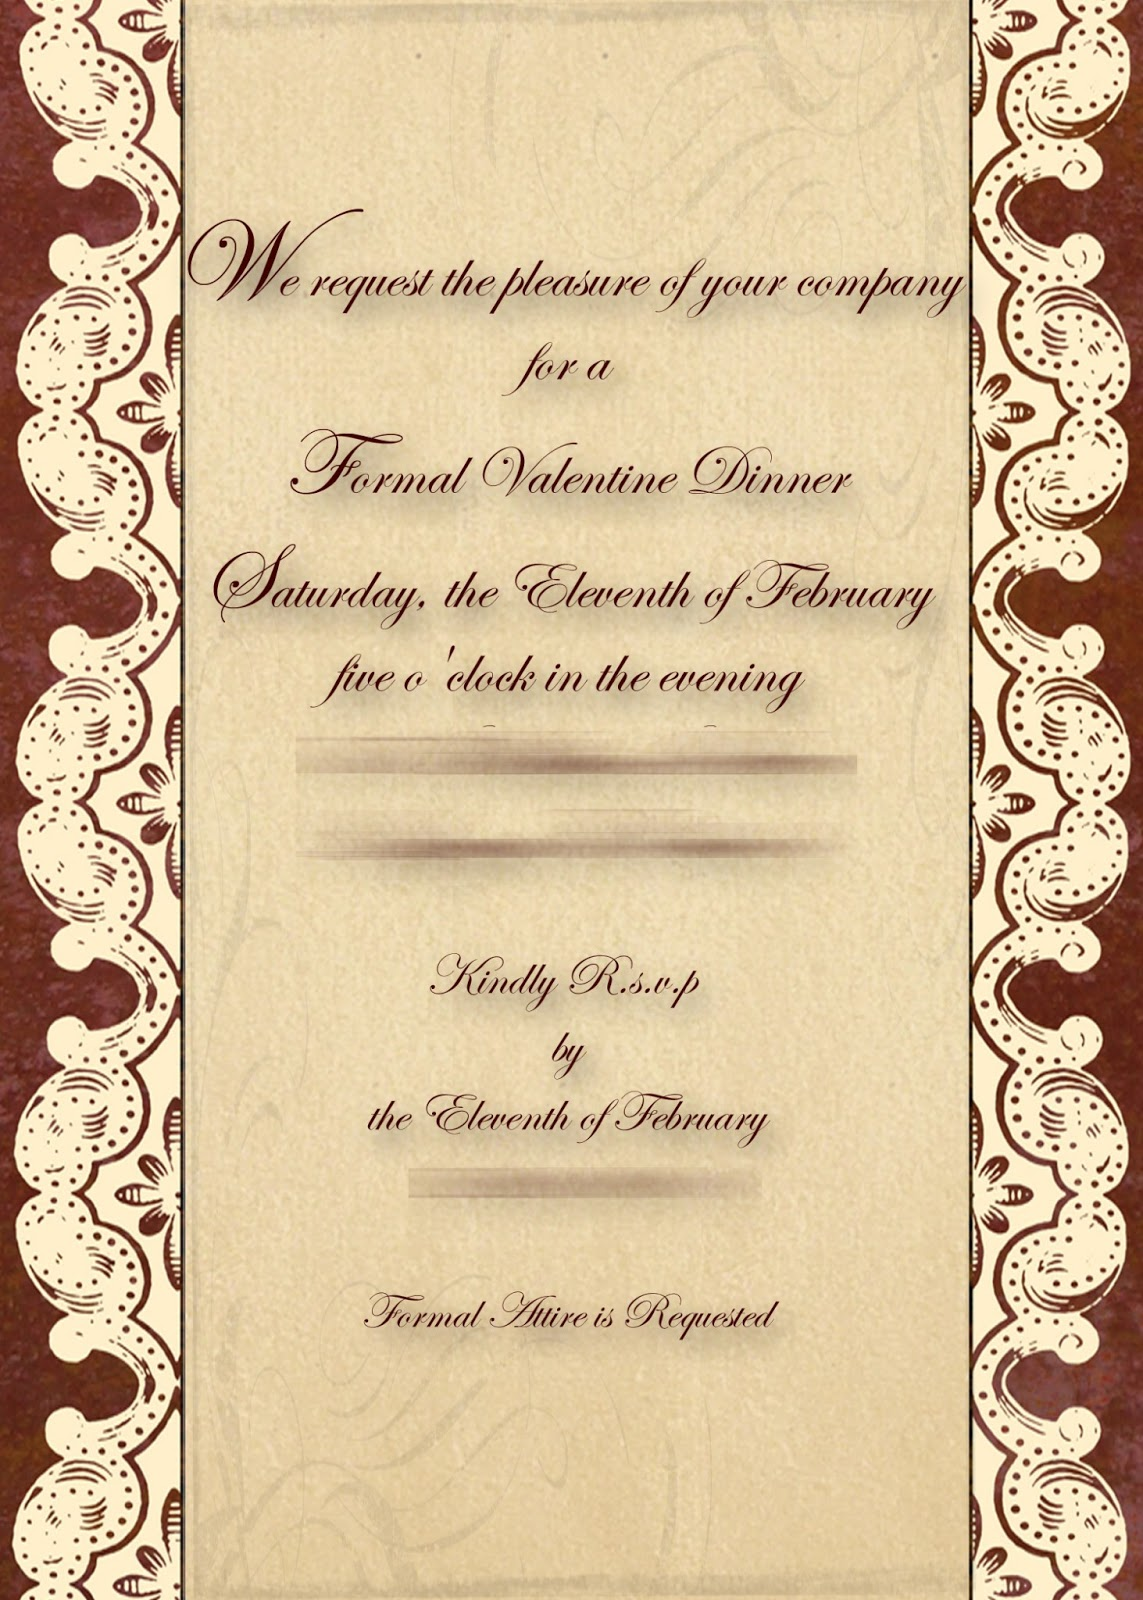 Menu Templates for Dinner . Find contracts for will Free Formal Dinner ...